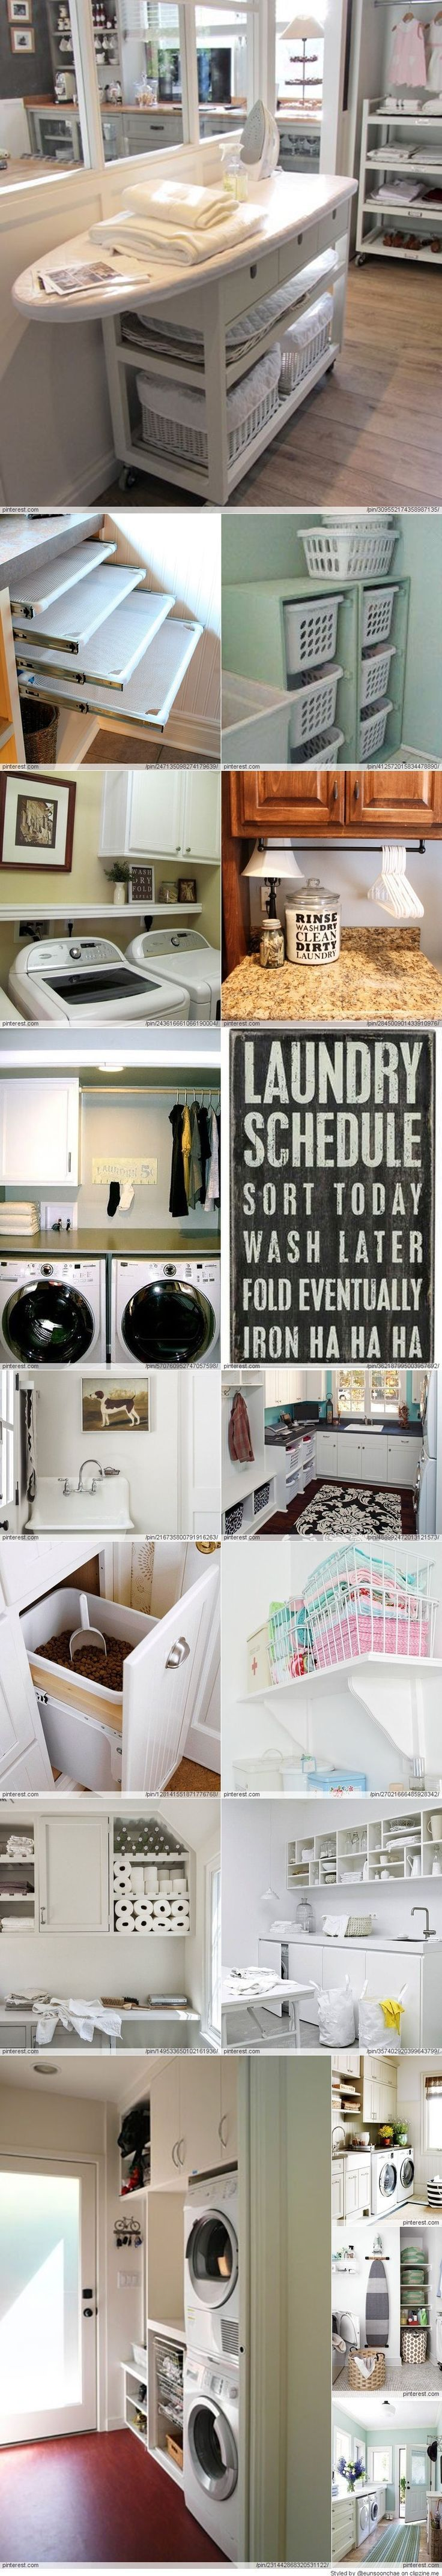 Laundry Room Ideas-like the ironing board idea-maybe with current kitchen island?